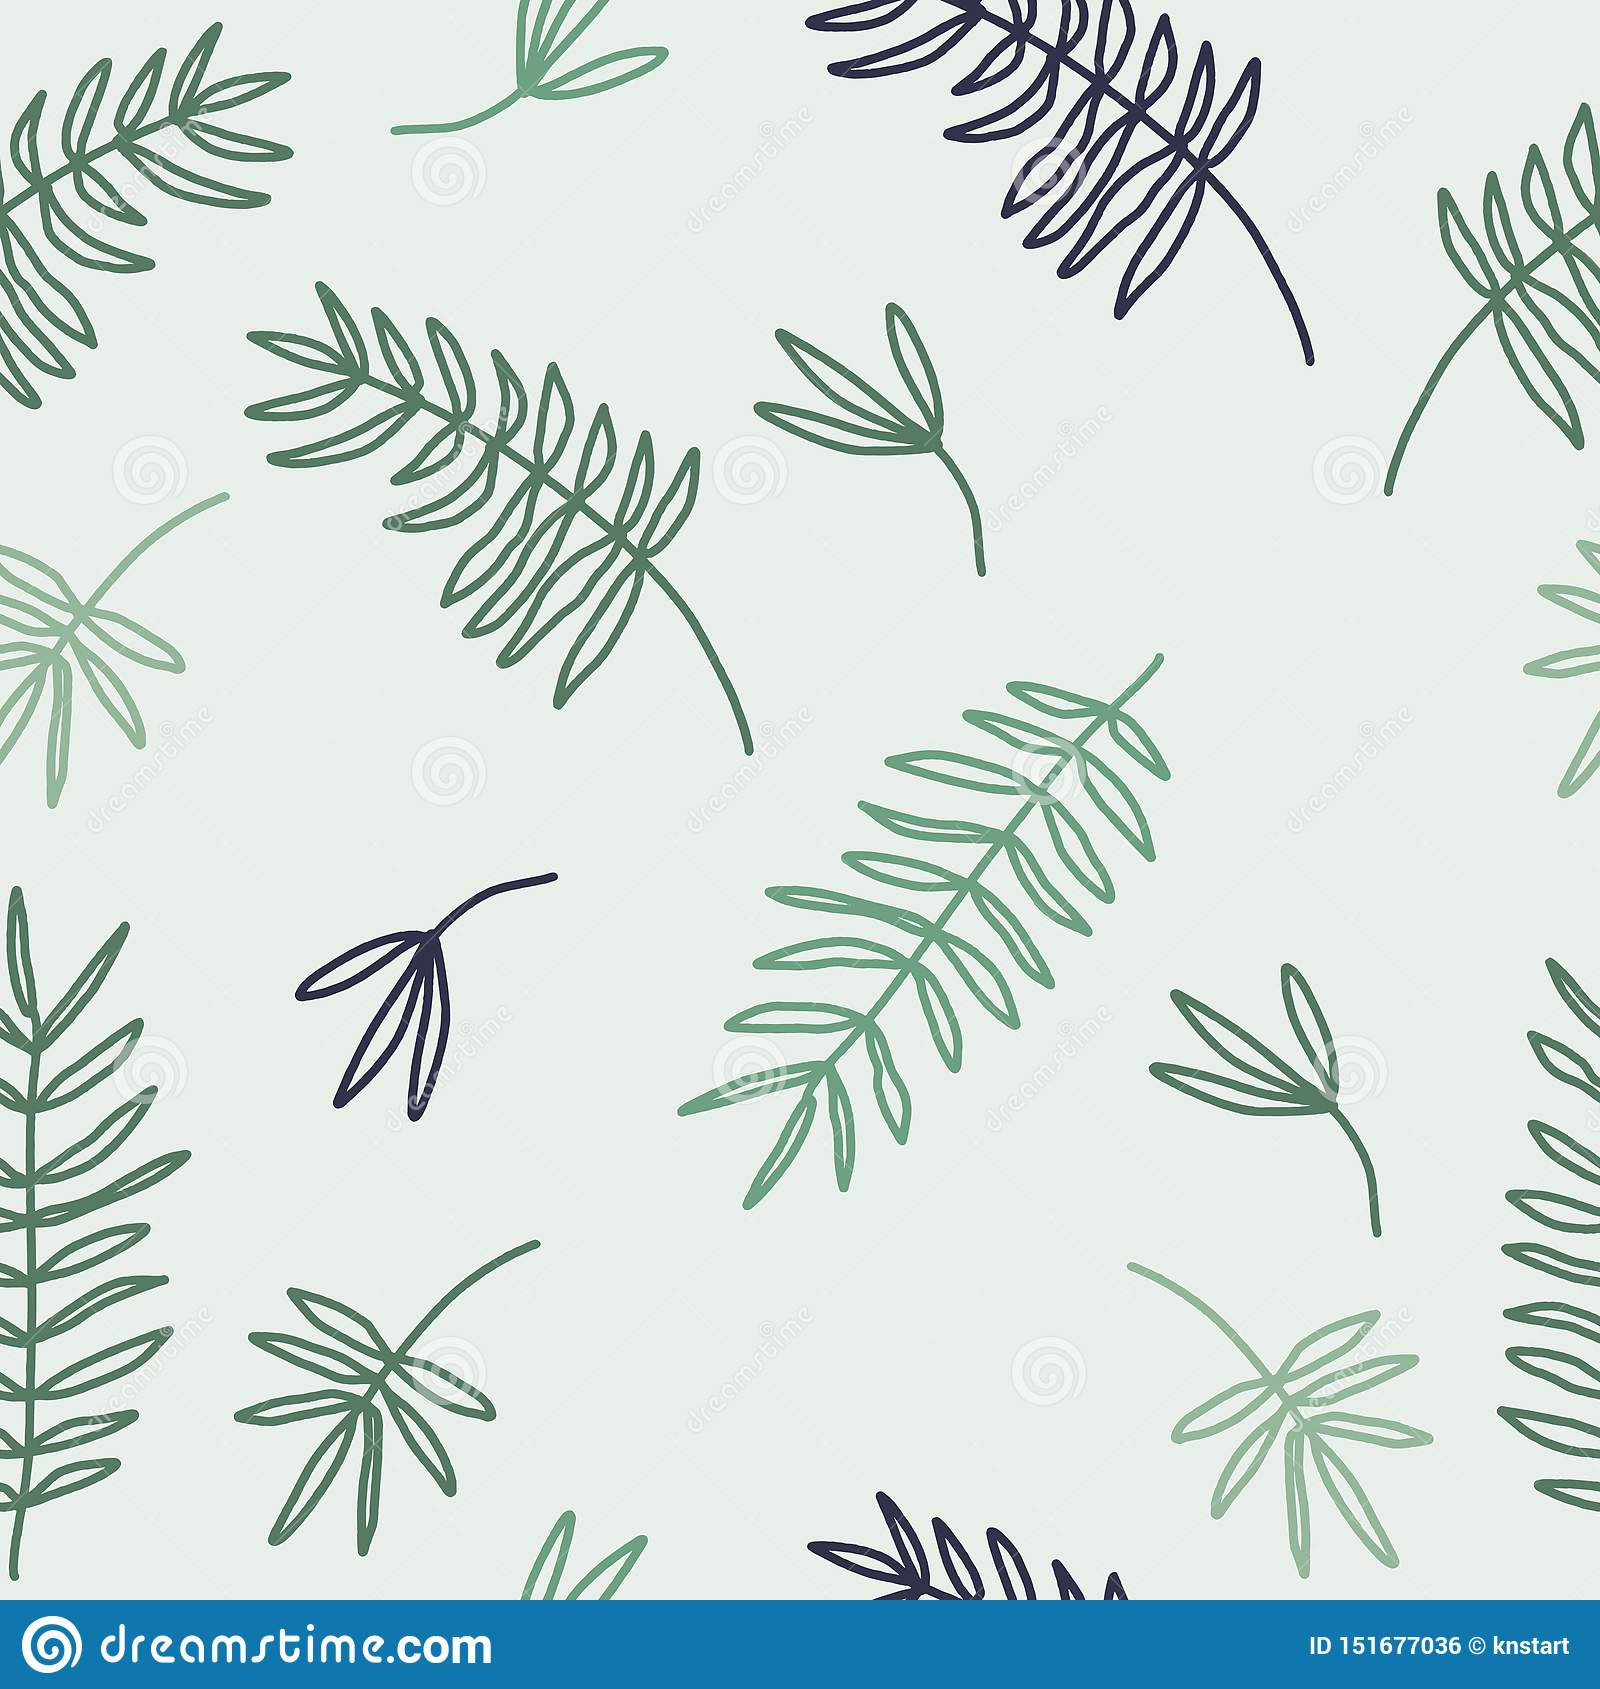 Abstract Spring Seamless Pattern With Leaves In Pastel Green Colors On Light Background Scandi Decor Wall Art Wallpaper Stock Illustration Illustration Of Background Nursery 151677036